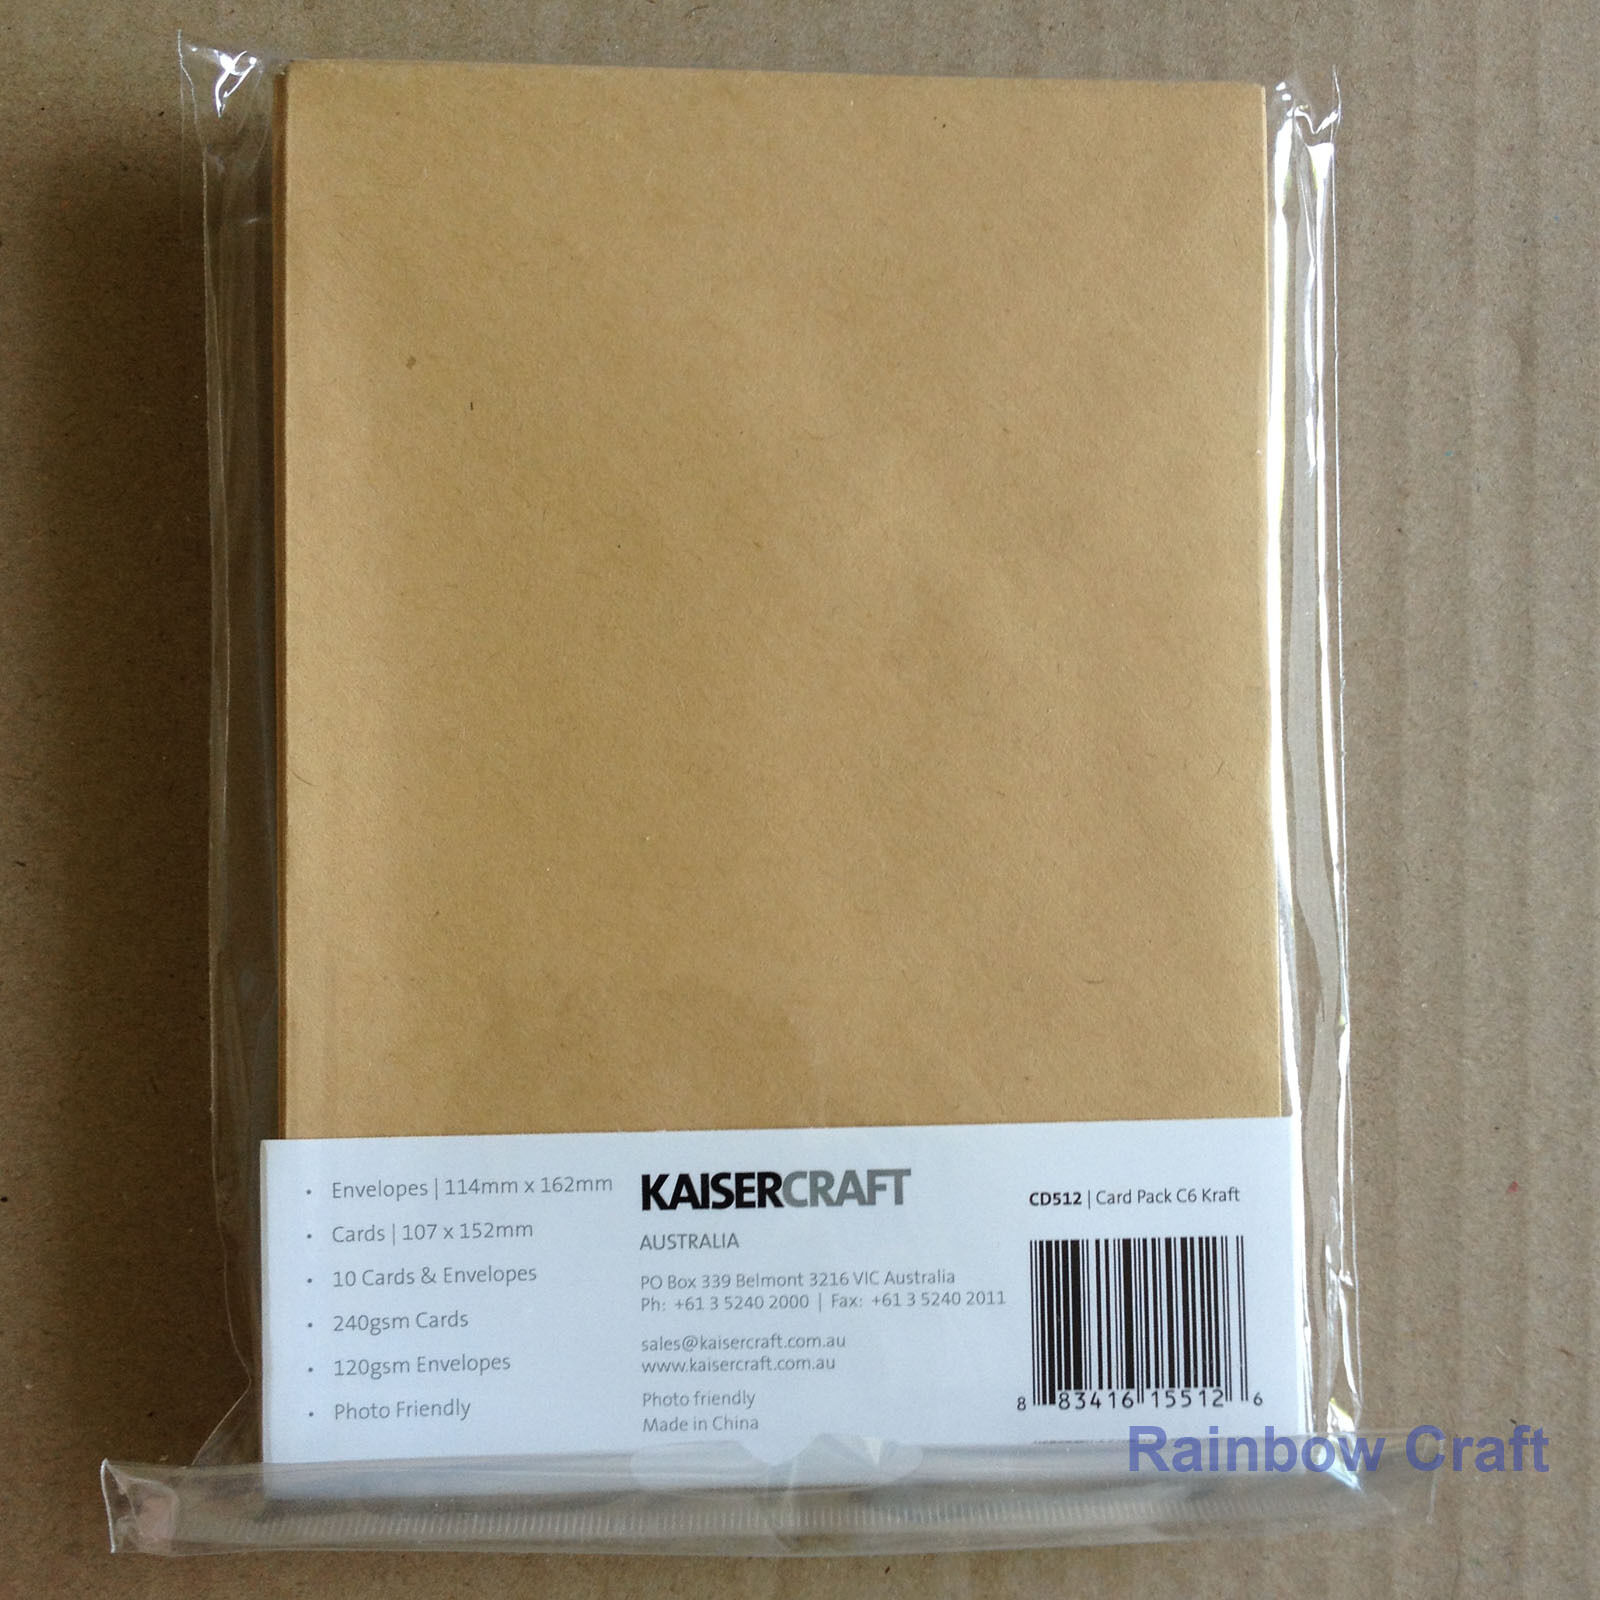 Kaisercraft 10 blank Cards and Envelopes 240gsm 107 *155 mm (3 colors selection) - Kraft